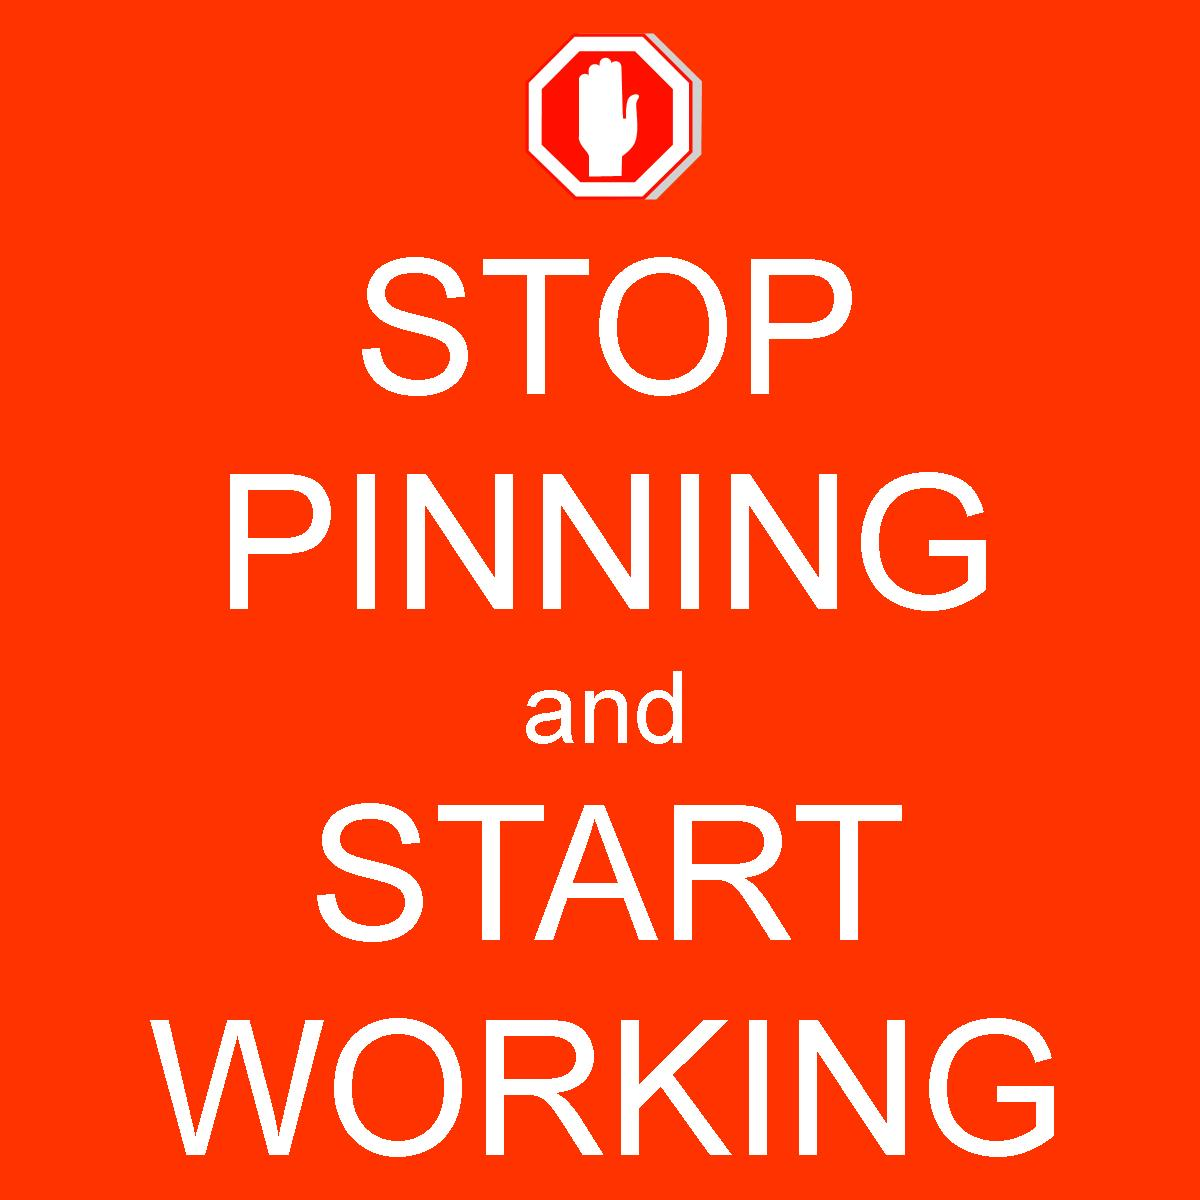 stop pinning and start working